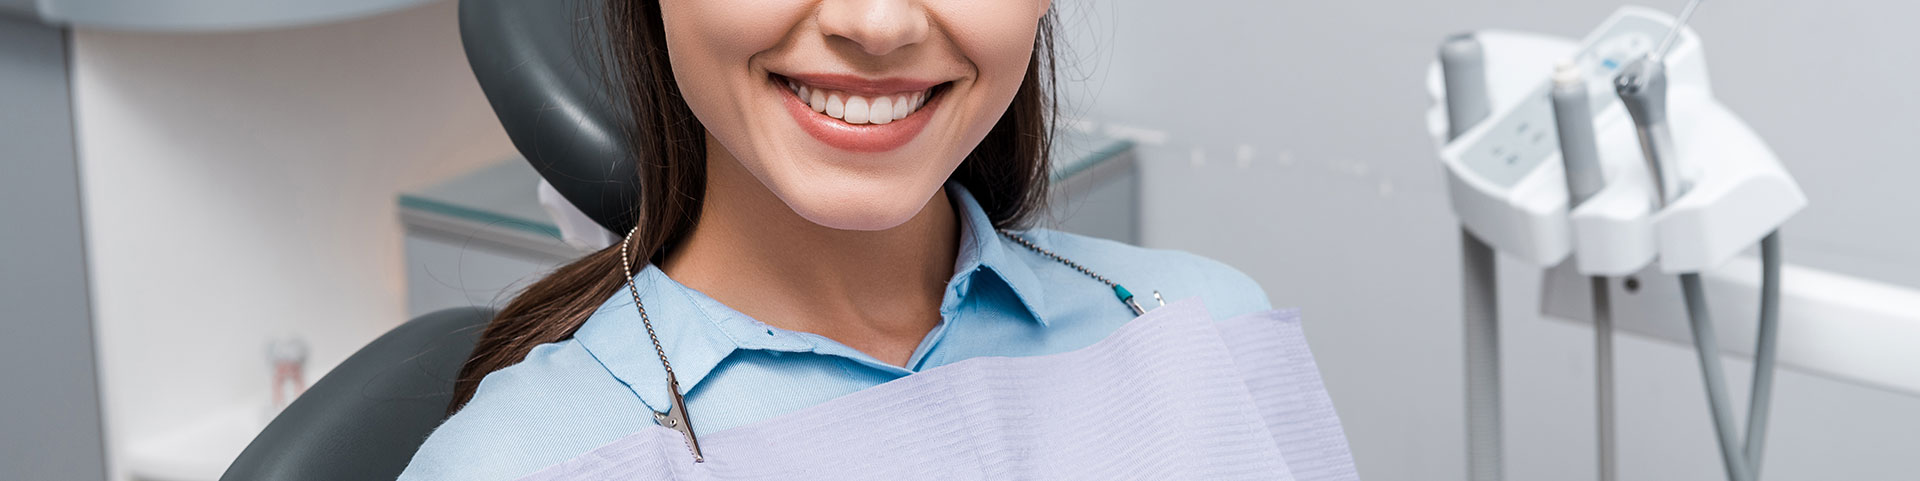 Cheerful woman smiling in dental